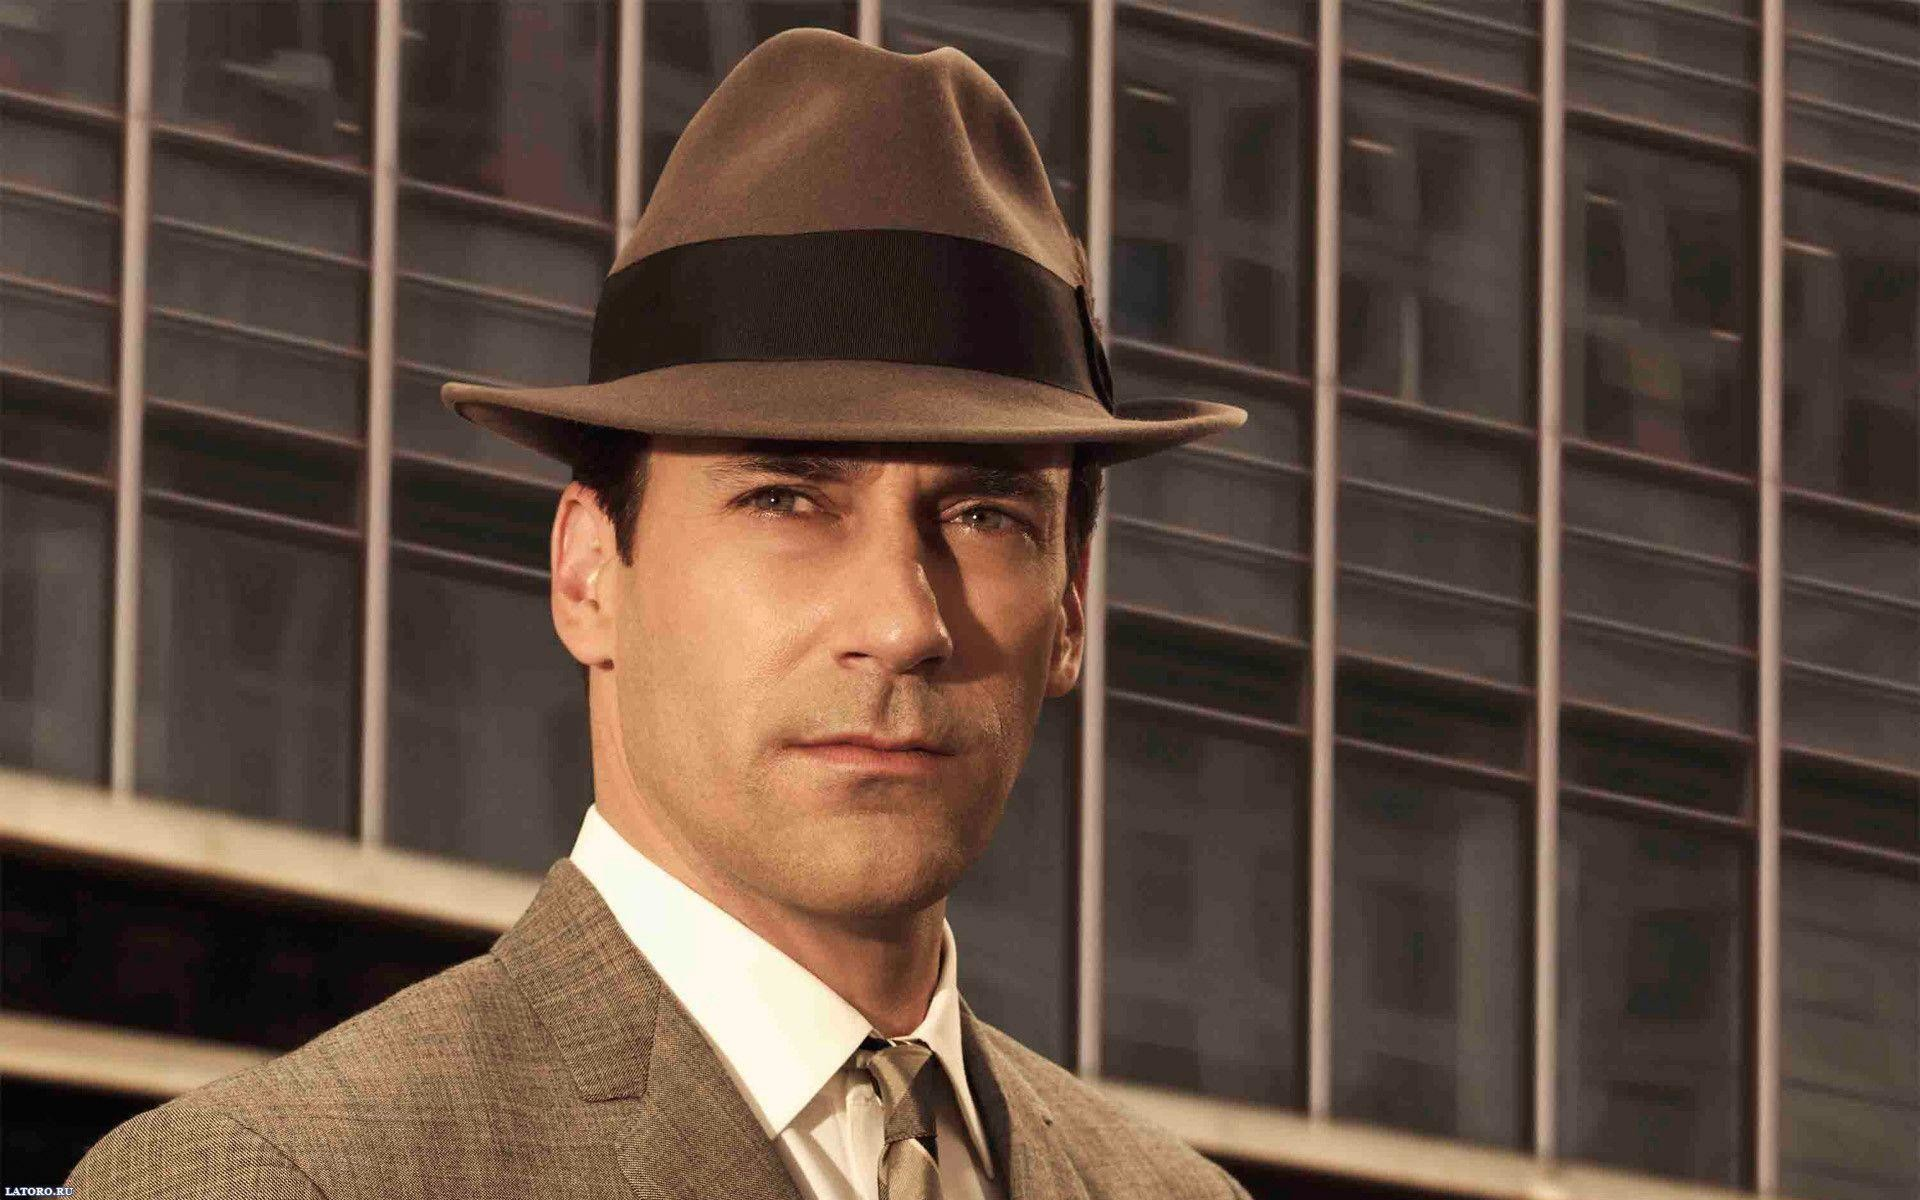 Res: 1920x1200, Jon Hamm Desktop Wallpapers FREE on Latoro.com